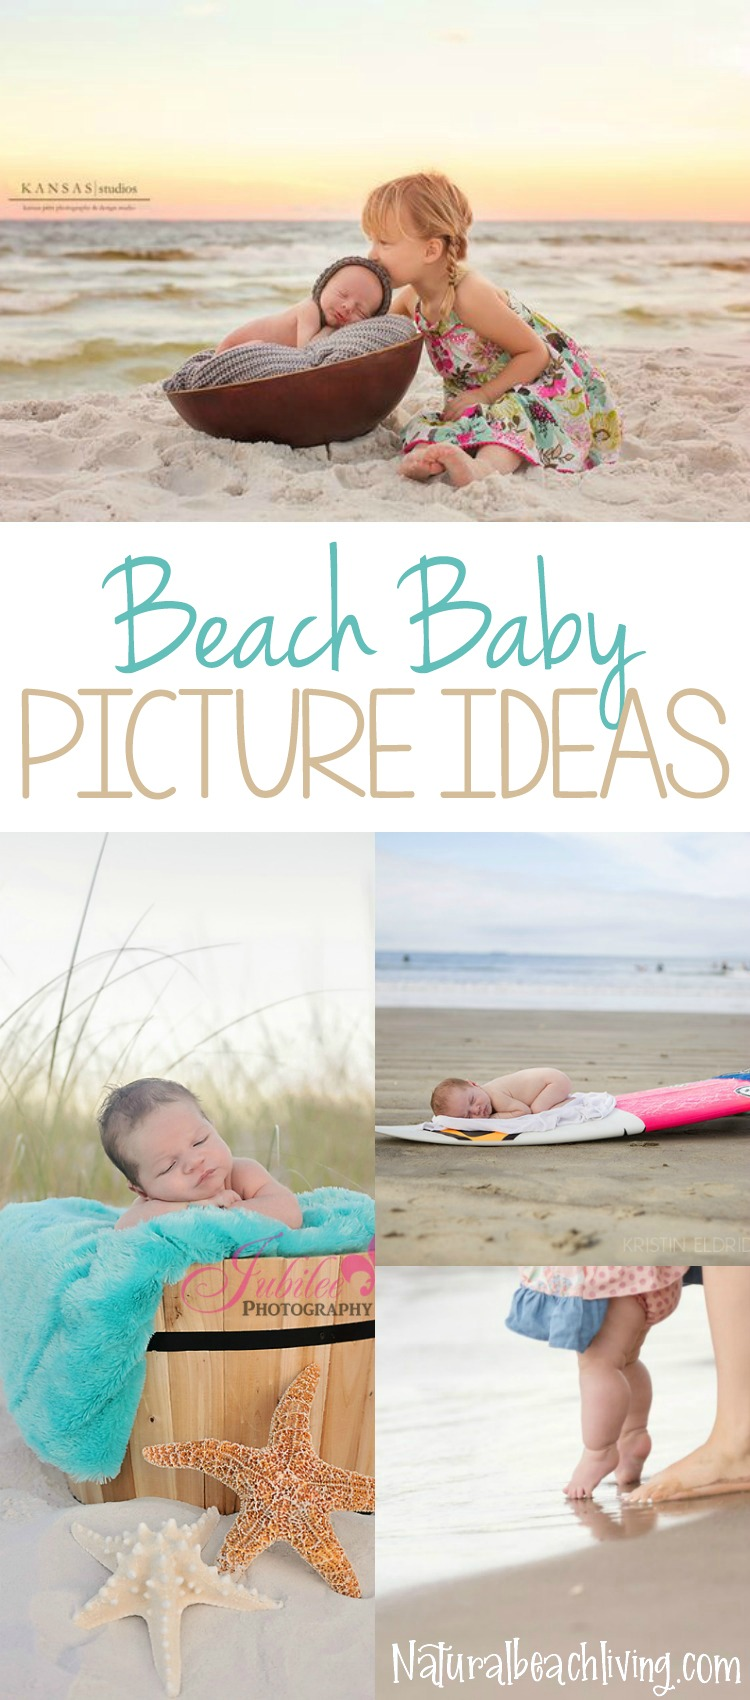 How to Take The Best Baby Beach Pictures, Baby Picture Ideas, Easy to recreate picture ideas for children, Fun & Creative Picture Ideas, Baby Picture ideas newborn